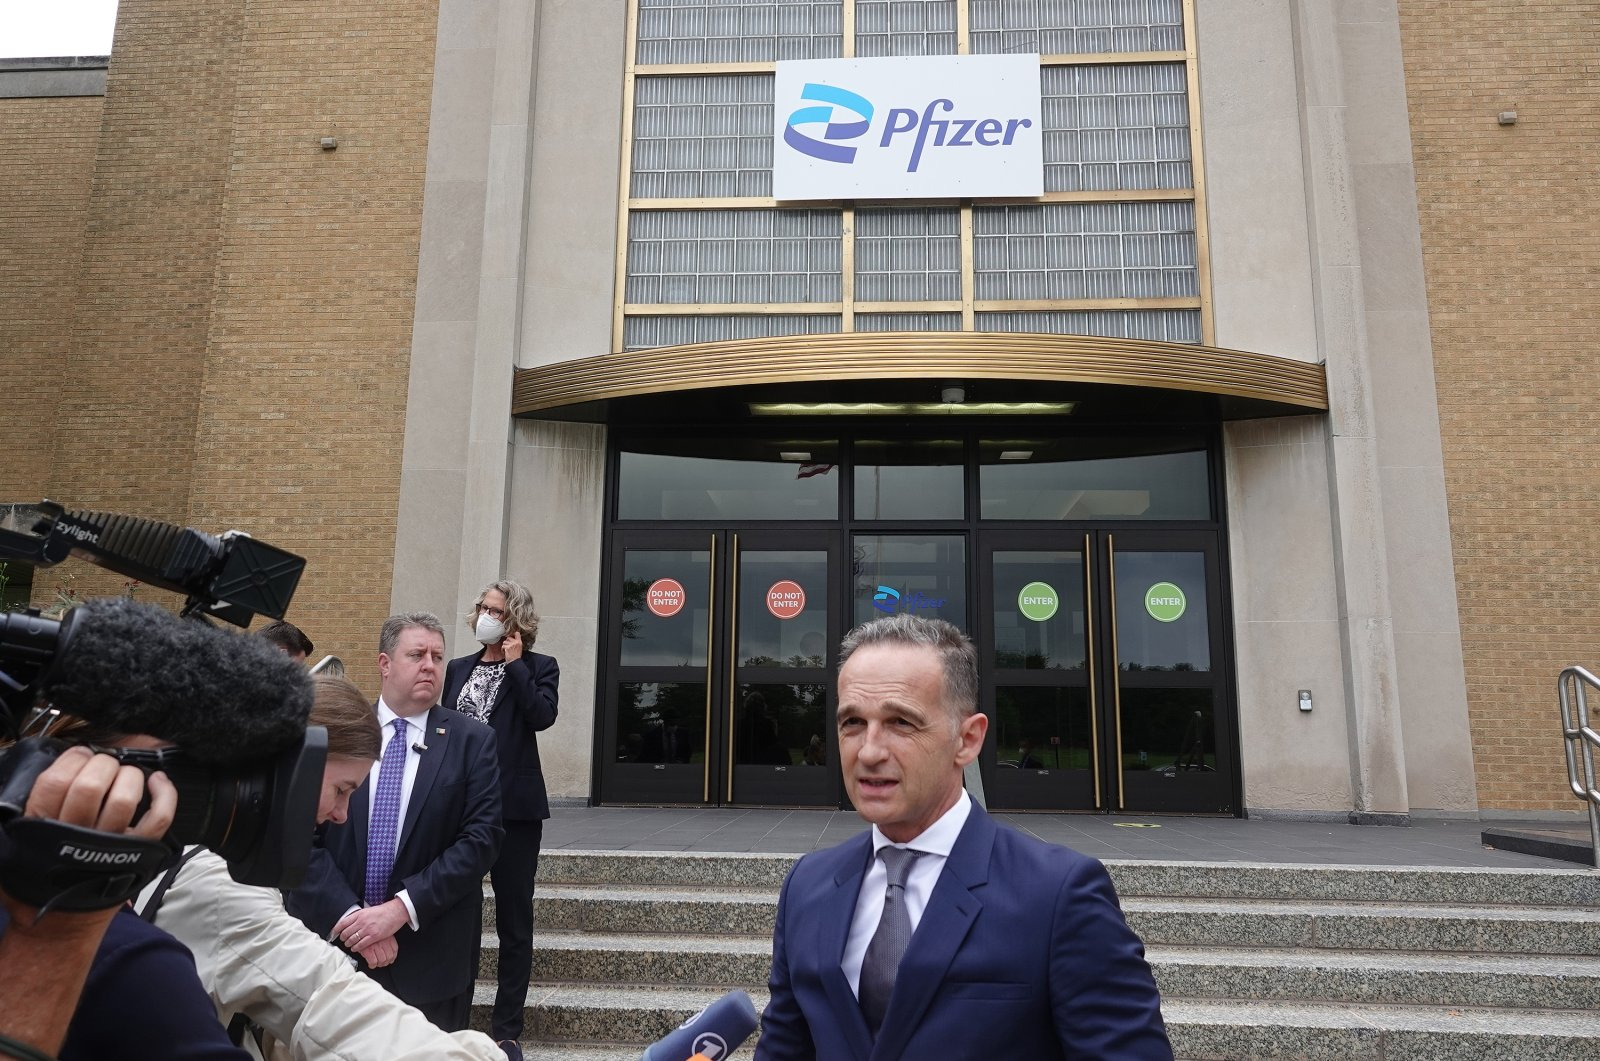 Germany's Foreign Minister Heiko Maas stands in front of the production facility of the US pharmaceutical company Pfizer in Kalamazoo, July 13, 2021. (DPA via Reuters)